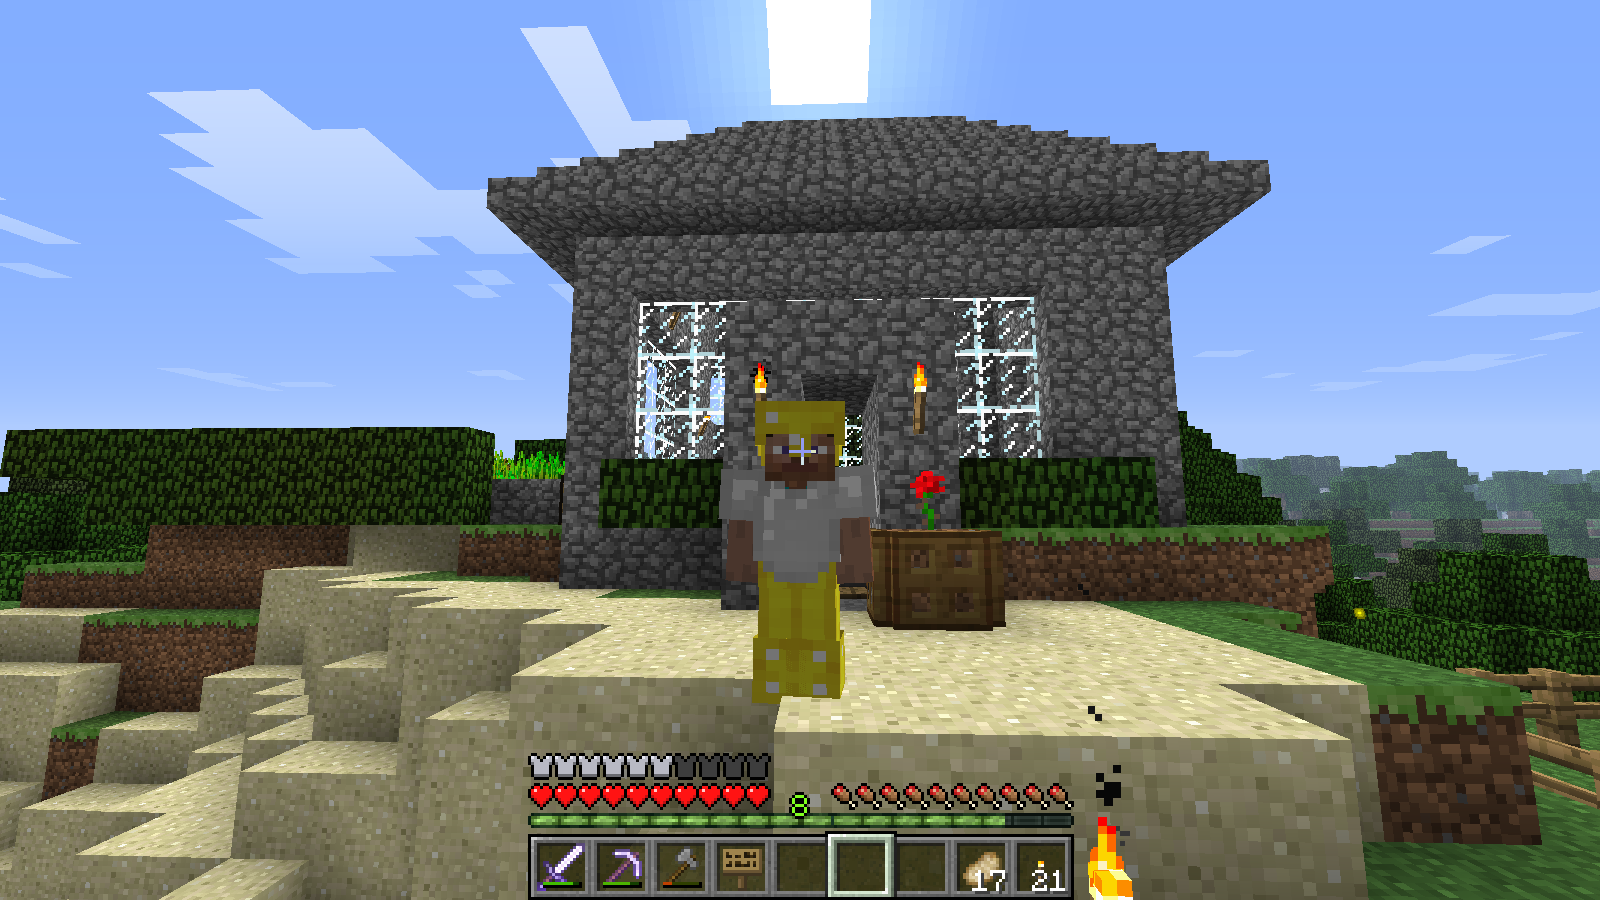 minecraft figure standing in front of a blocky stone house with a triangle roof, wearing silver and gold armour